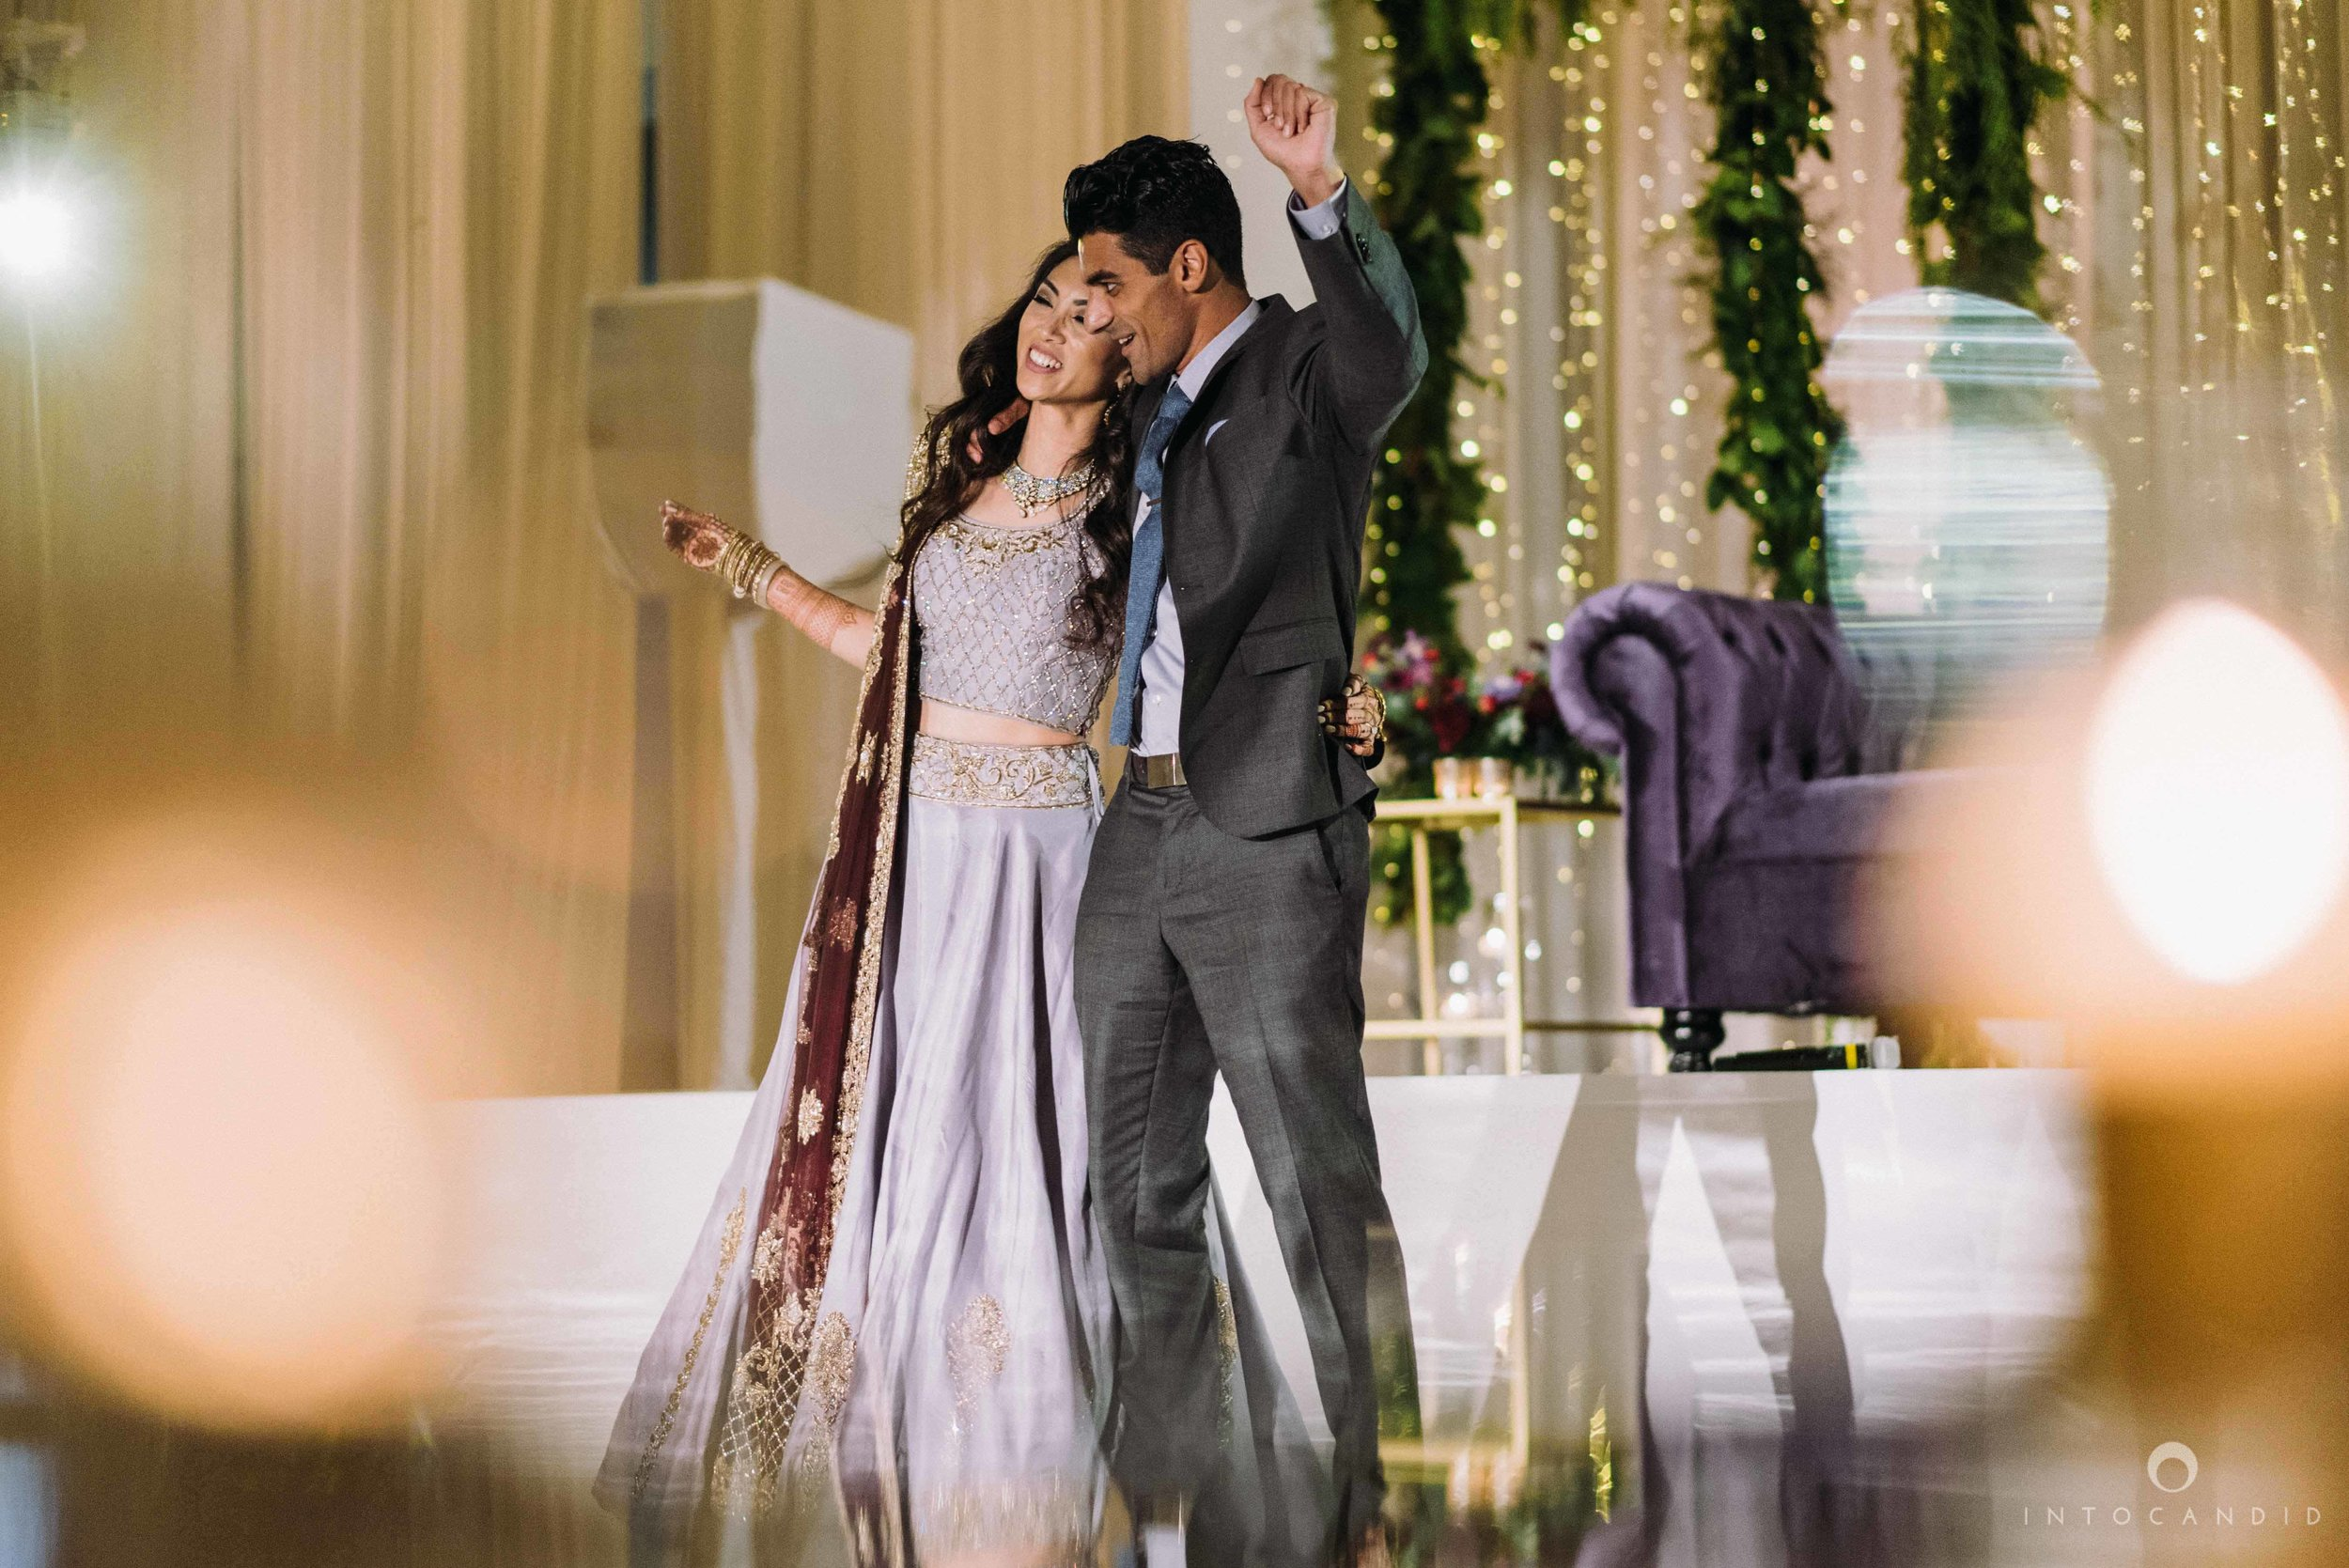 LosAngeles_Indian_Wedding_Photographer_AS_150.jpg